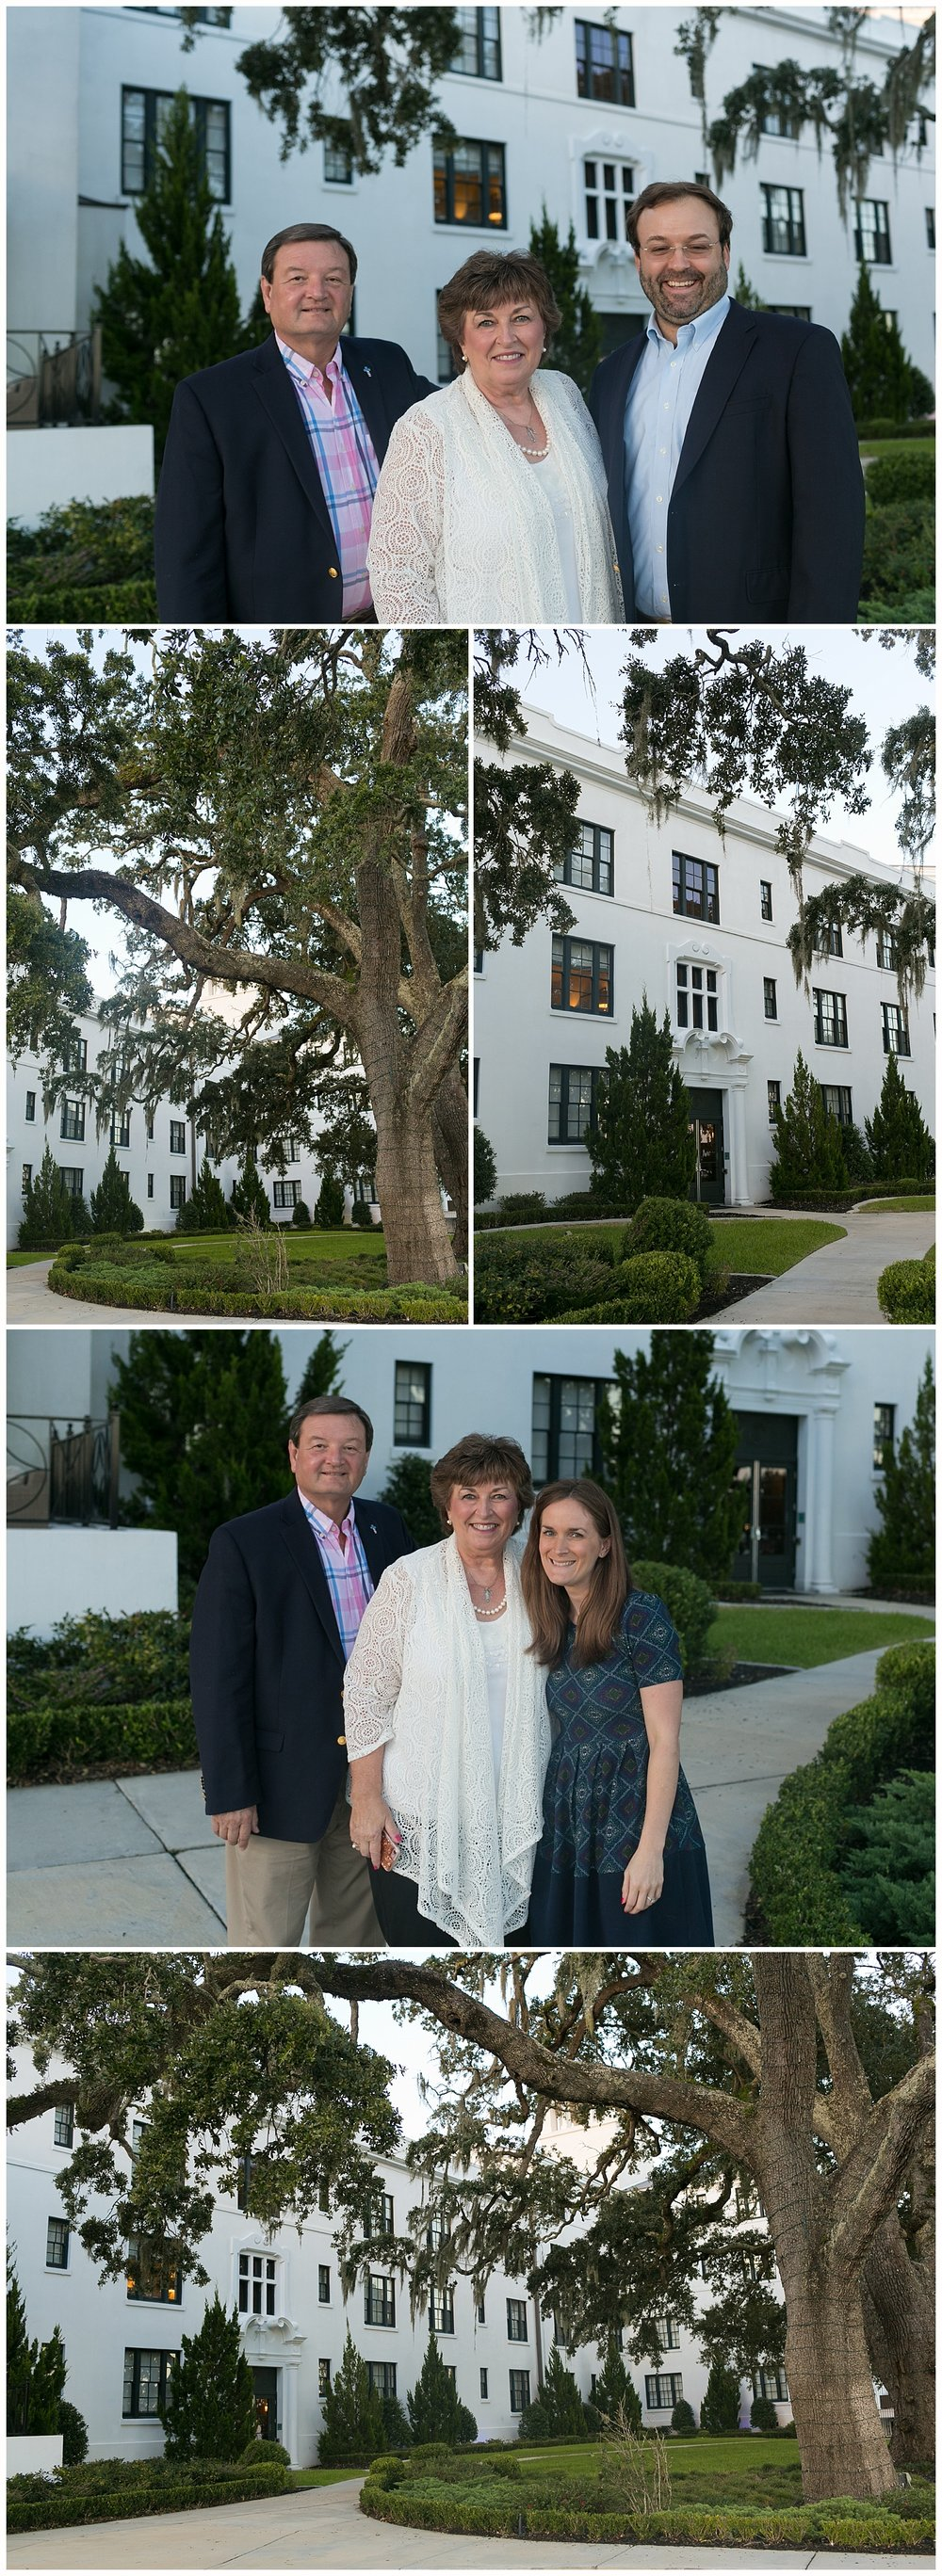 family photos before dinner at Cora's at the White House Hotel in Biloxi, Mississippi